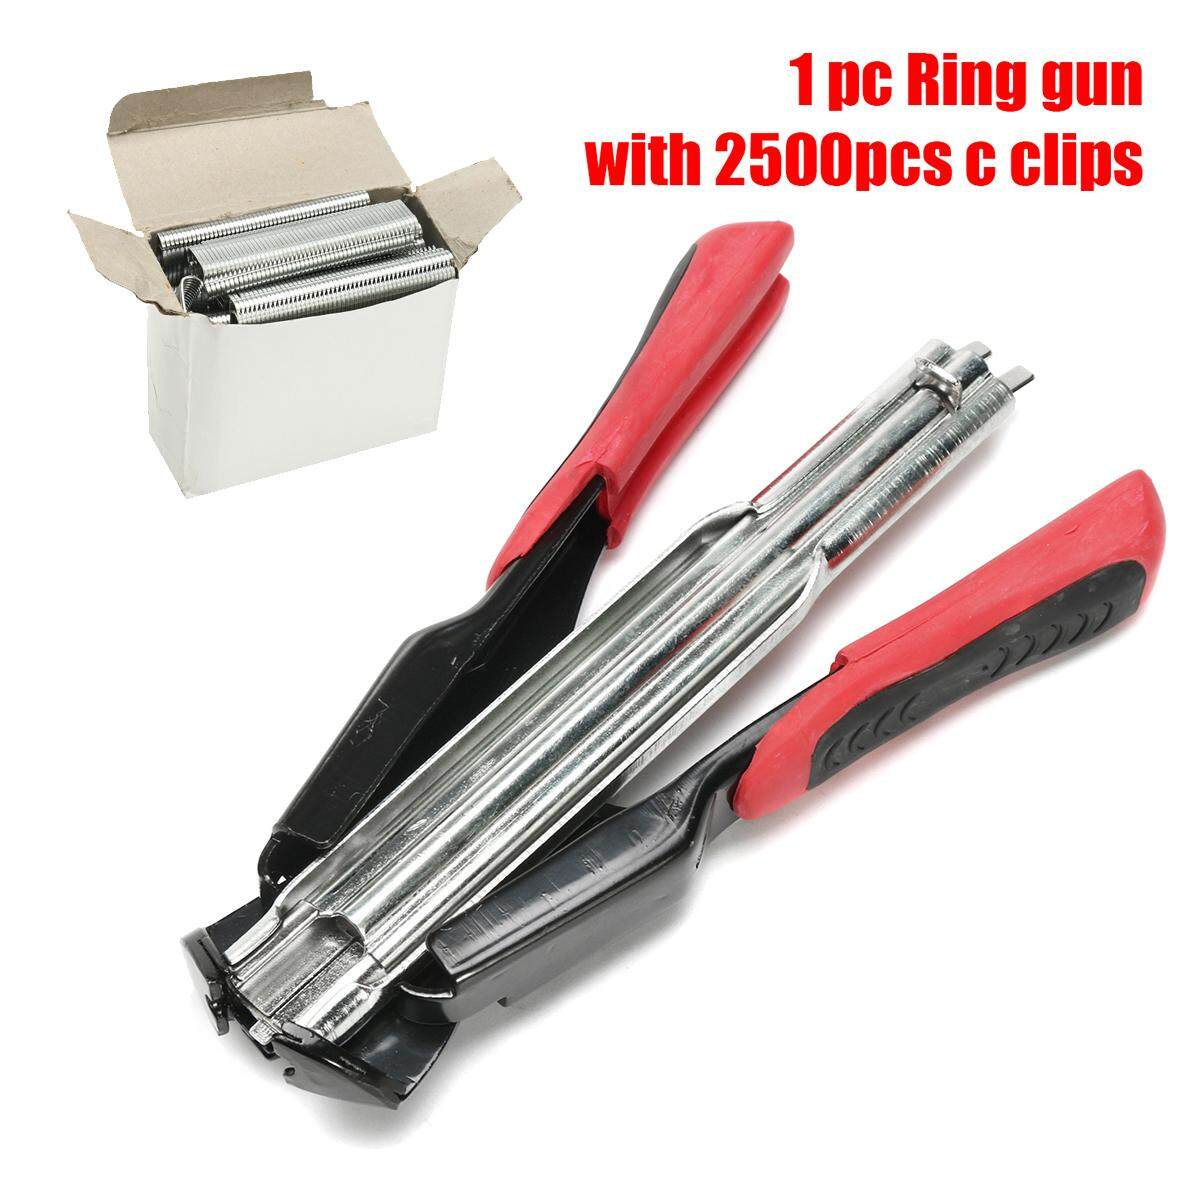 Hog Ring Pliers With 2500 C Clips Spring Loaded Fastening Cage Clamp Fences